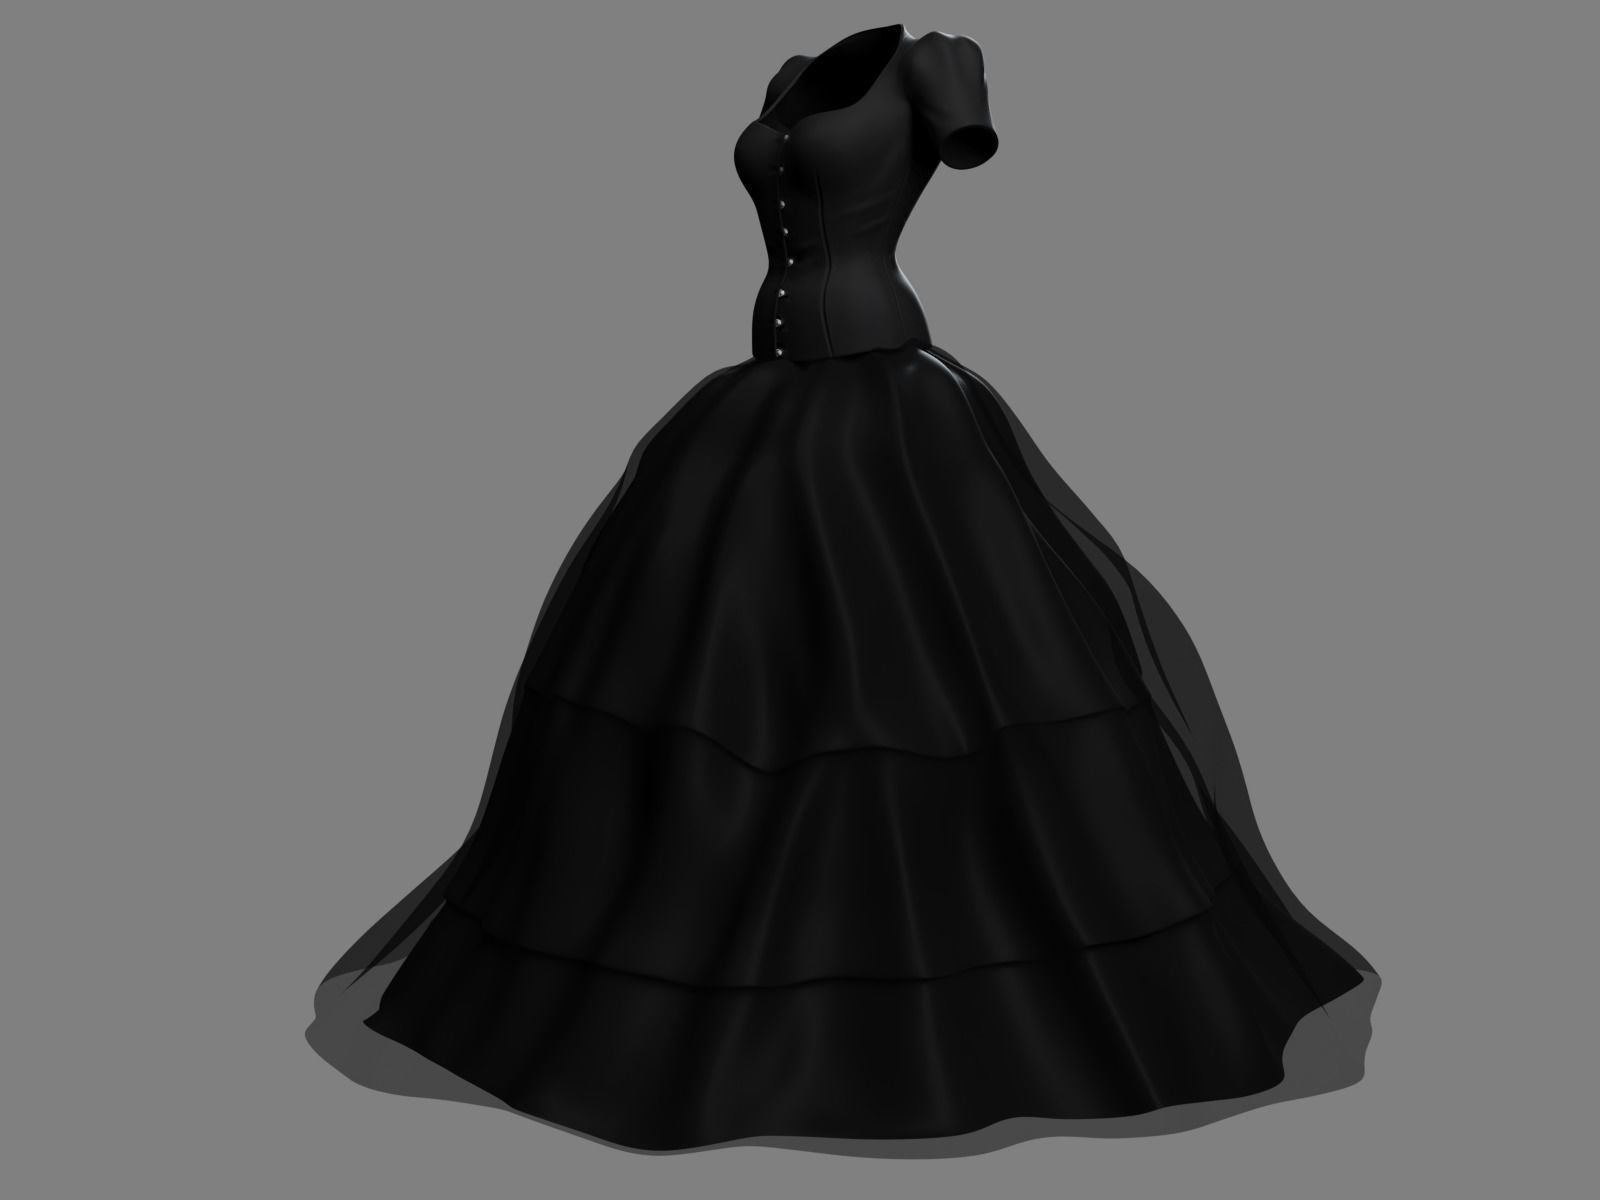 Victorian Gothic Dress 3 3D model | CGTrader